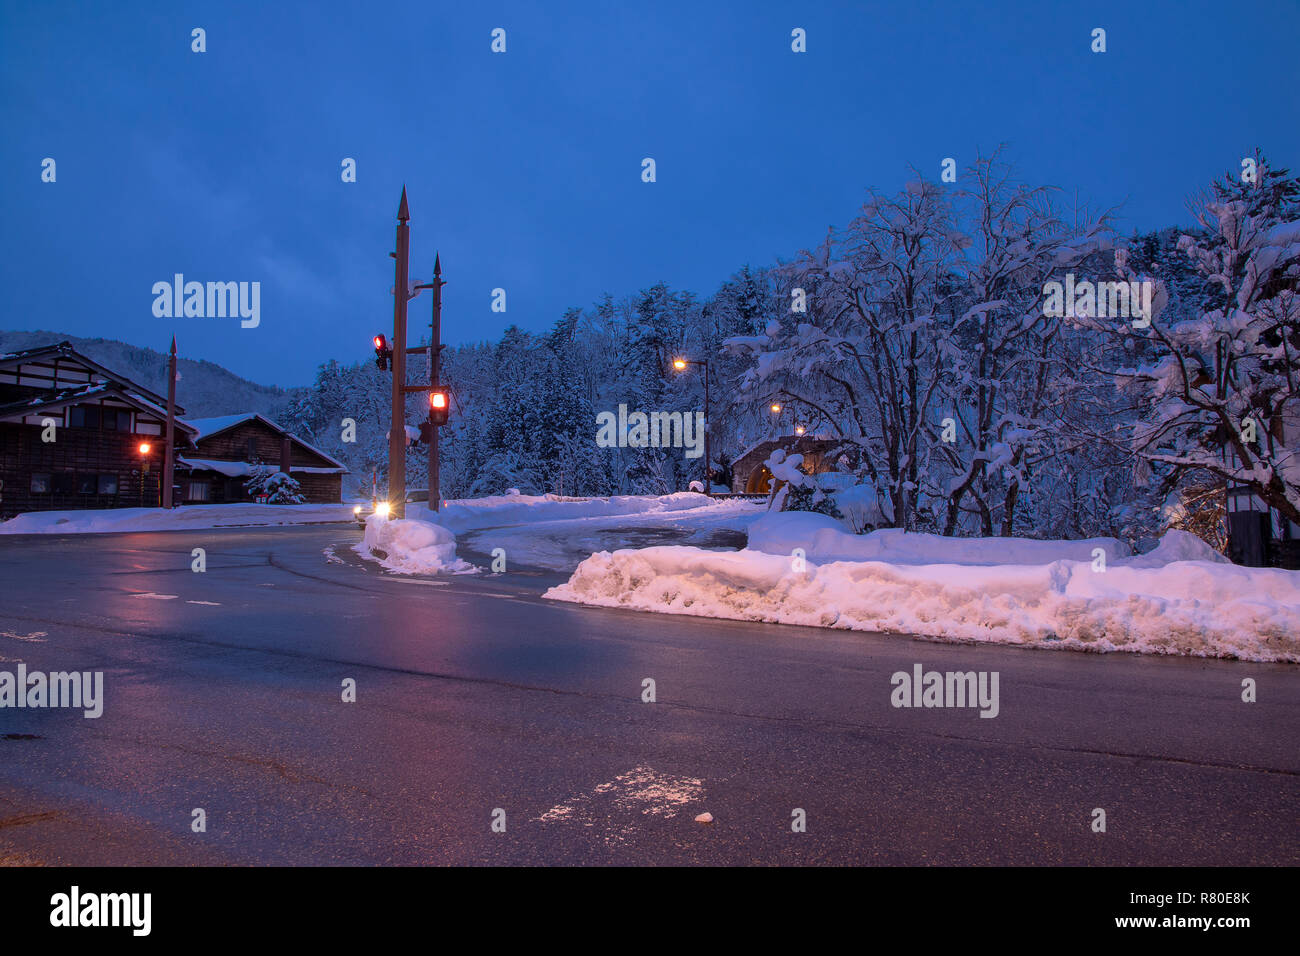 Urban atmosphere in the evening in winter background. - Stock Image